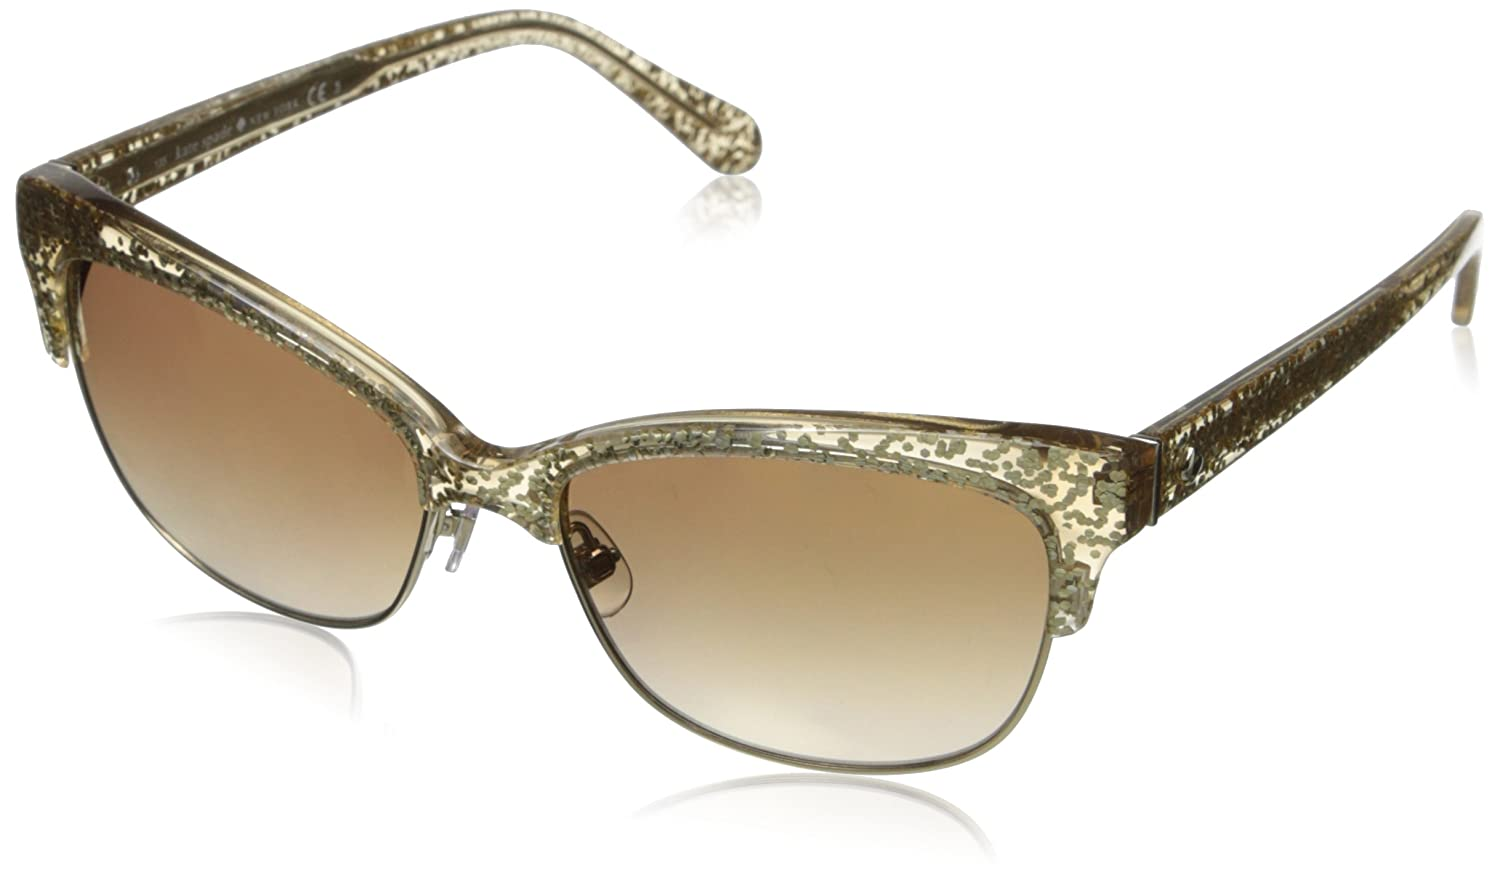 Amazon.com: kate spade new york Women s Shira Cat-eye ...